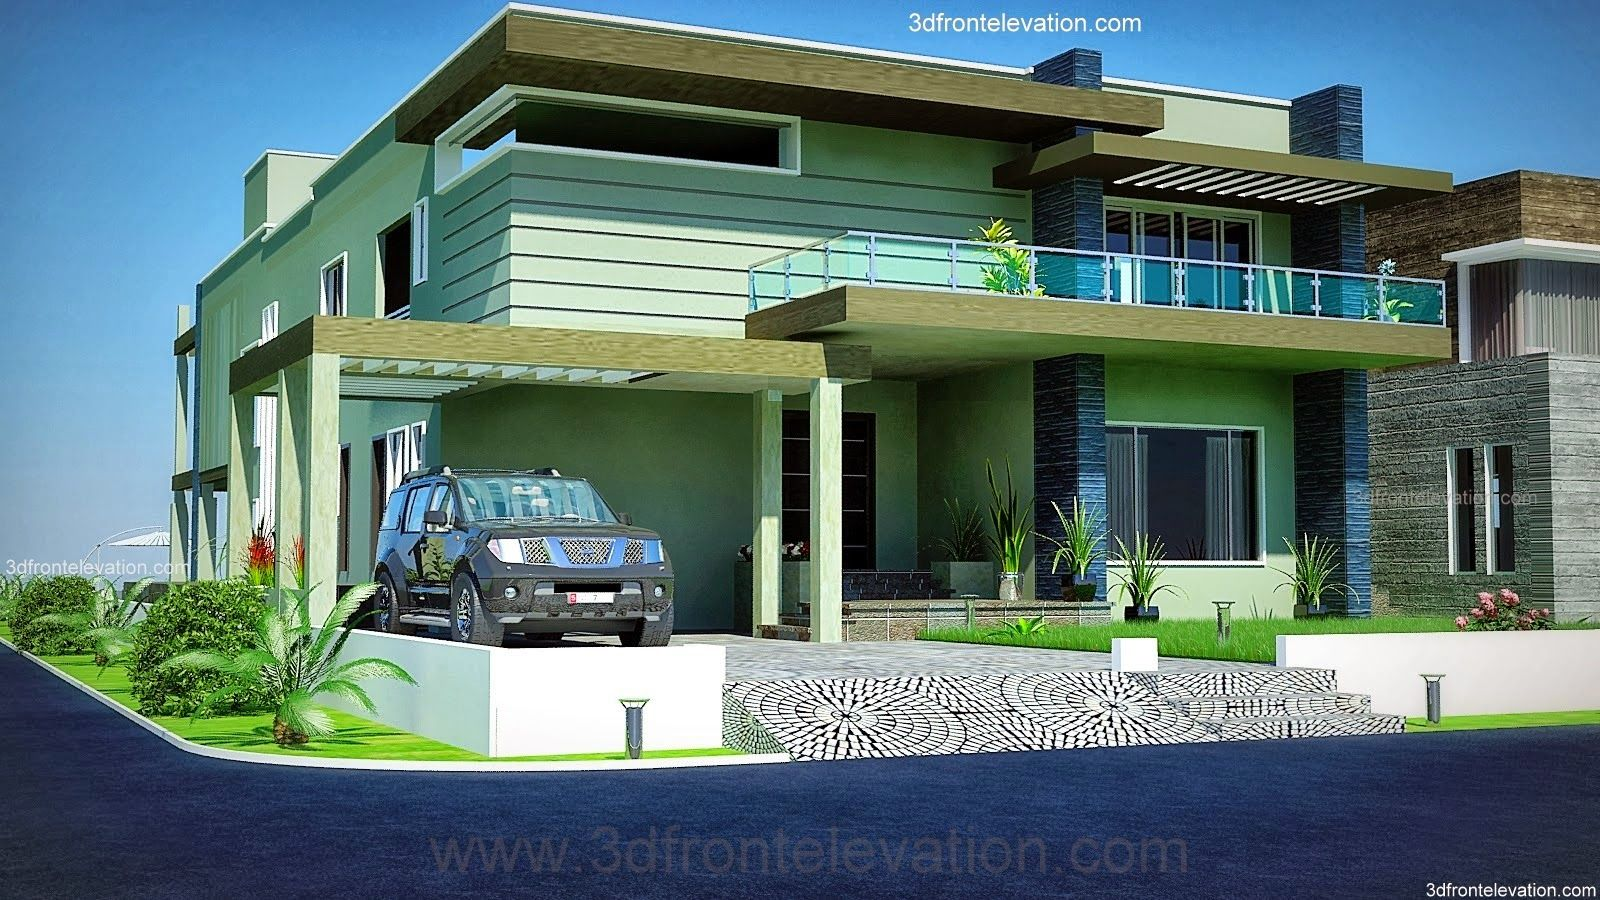 House design karachi - 2 2 Kanal Dha Karachi Modern Contemporary House Design With Swimming Plool 3d Front Elevation